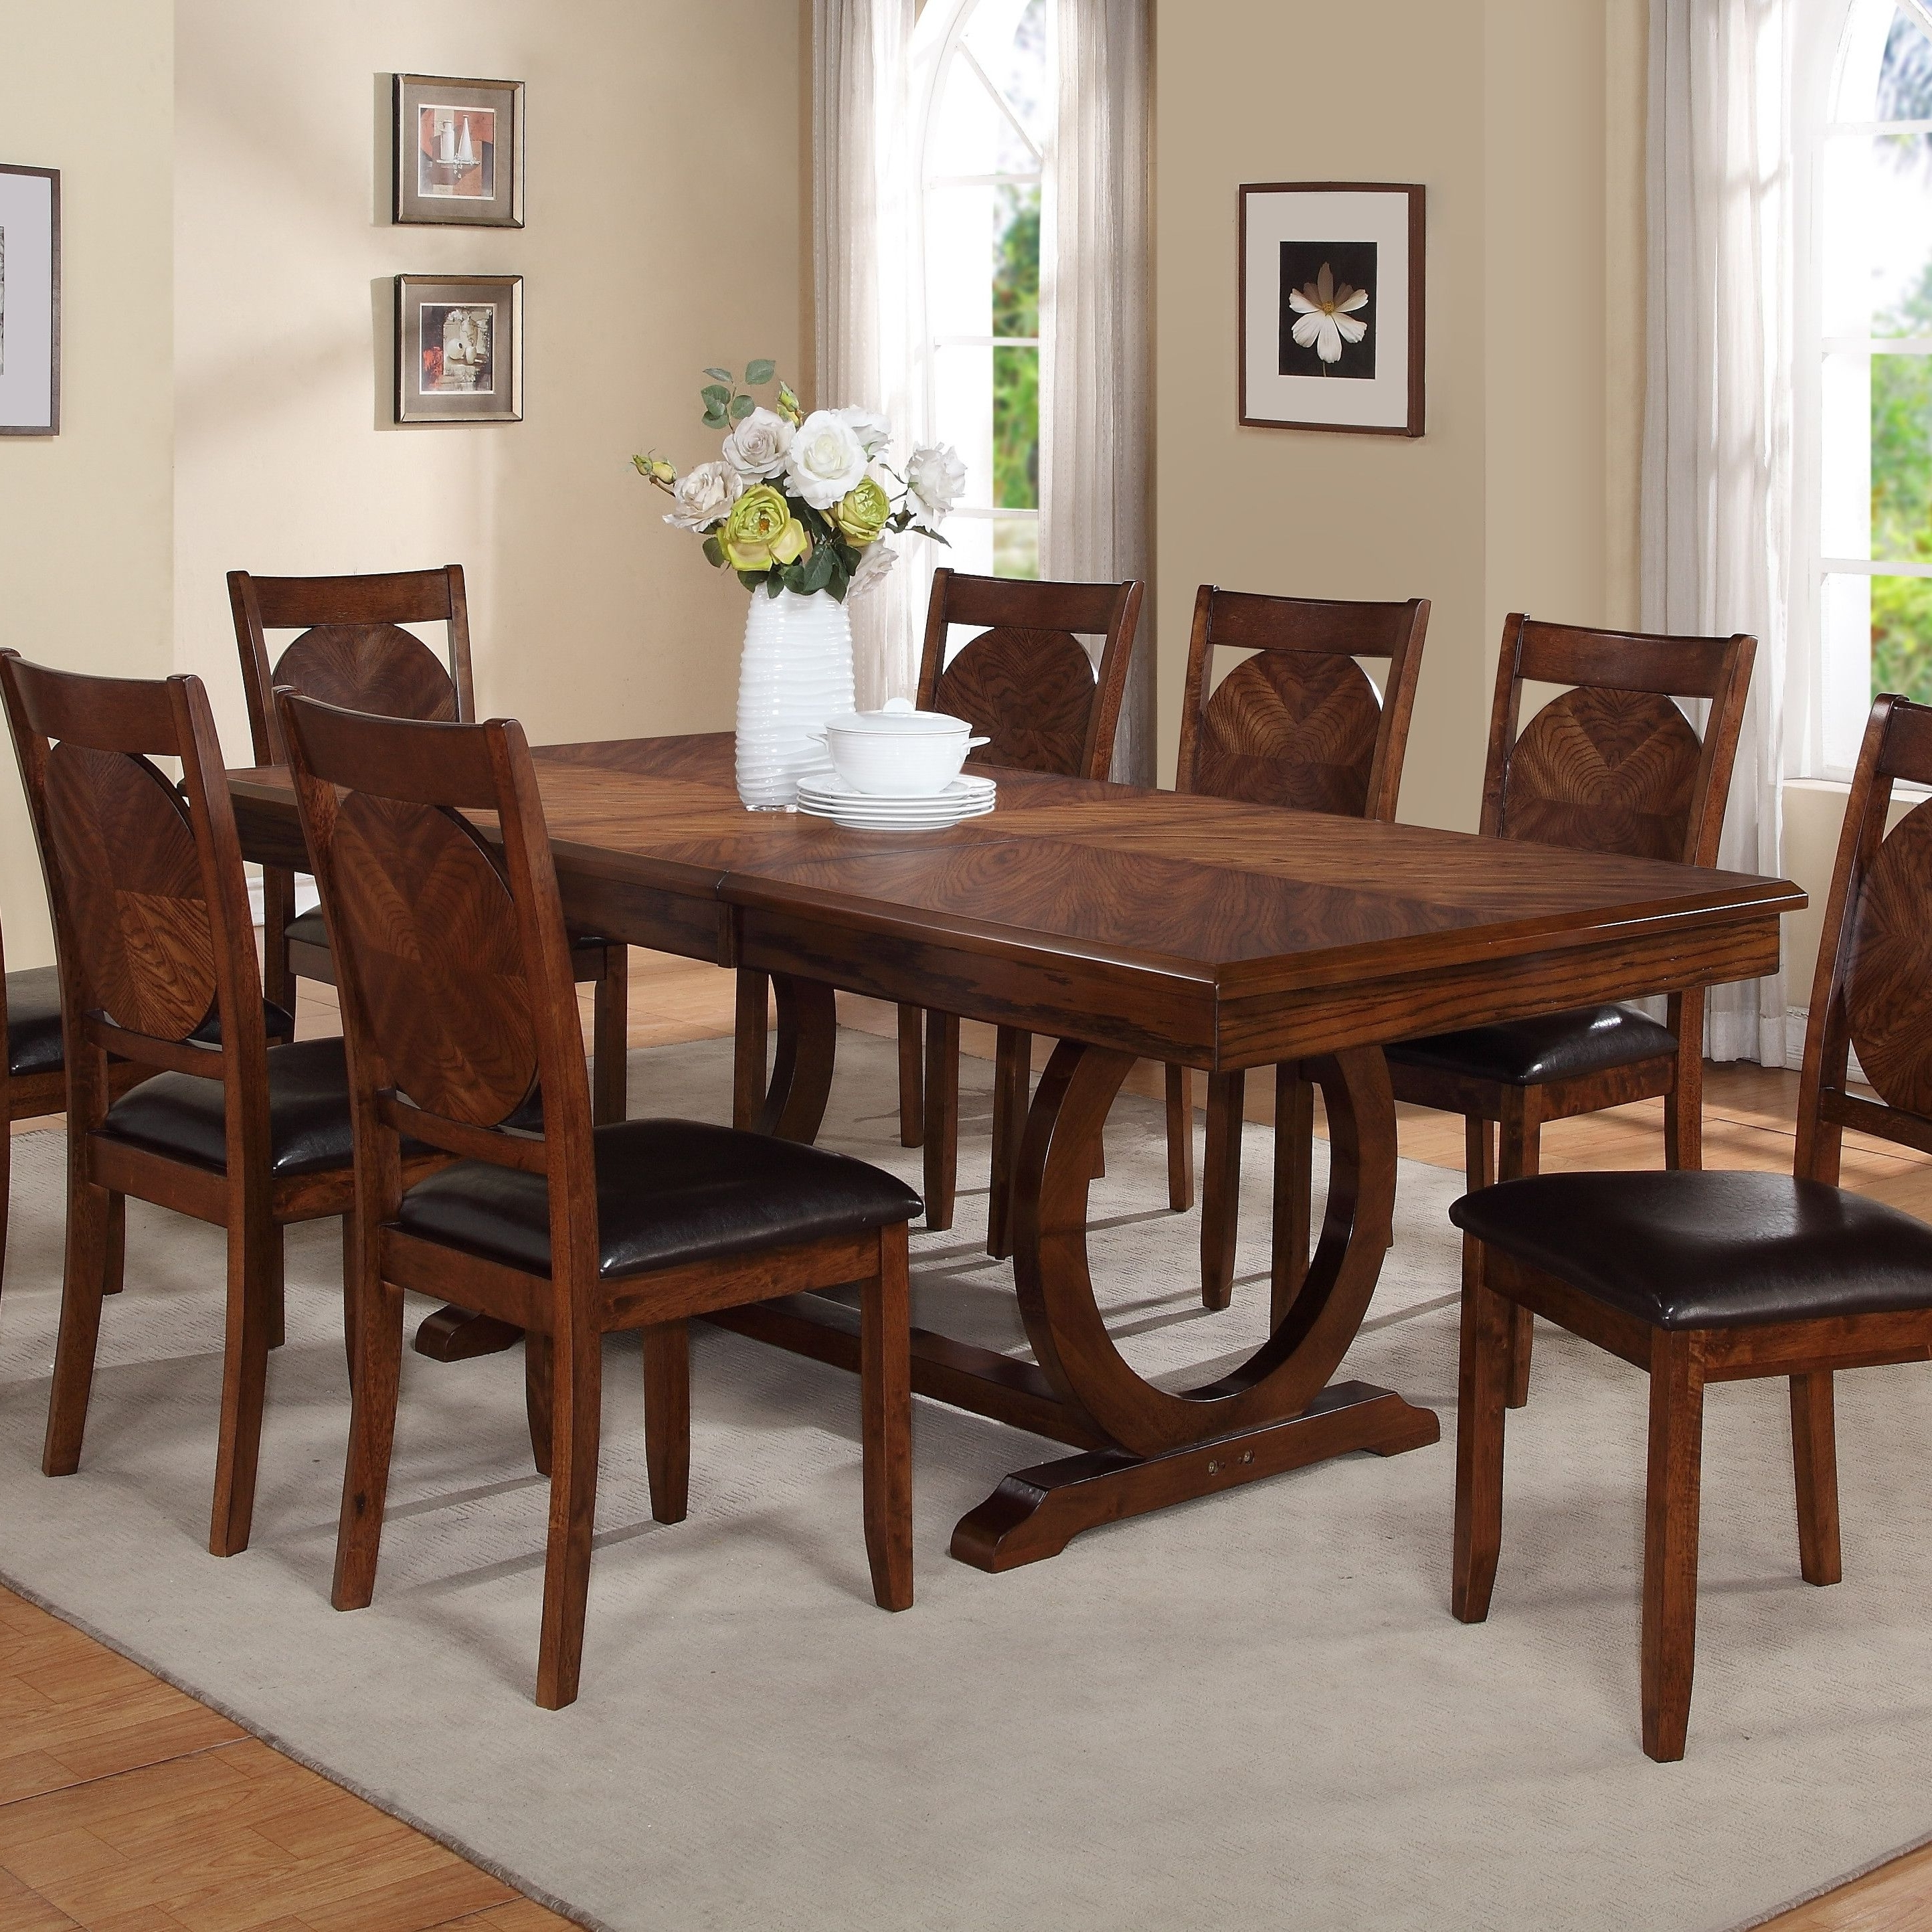 Trendy Extendable Dining Tables With 8 Seats With Kapoor Extendable Dining Table (View 16 of 25)